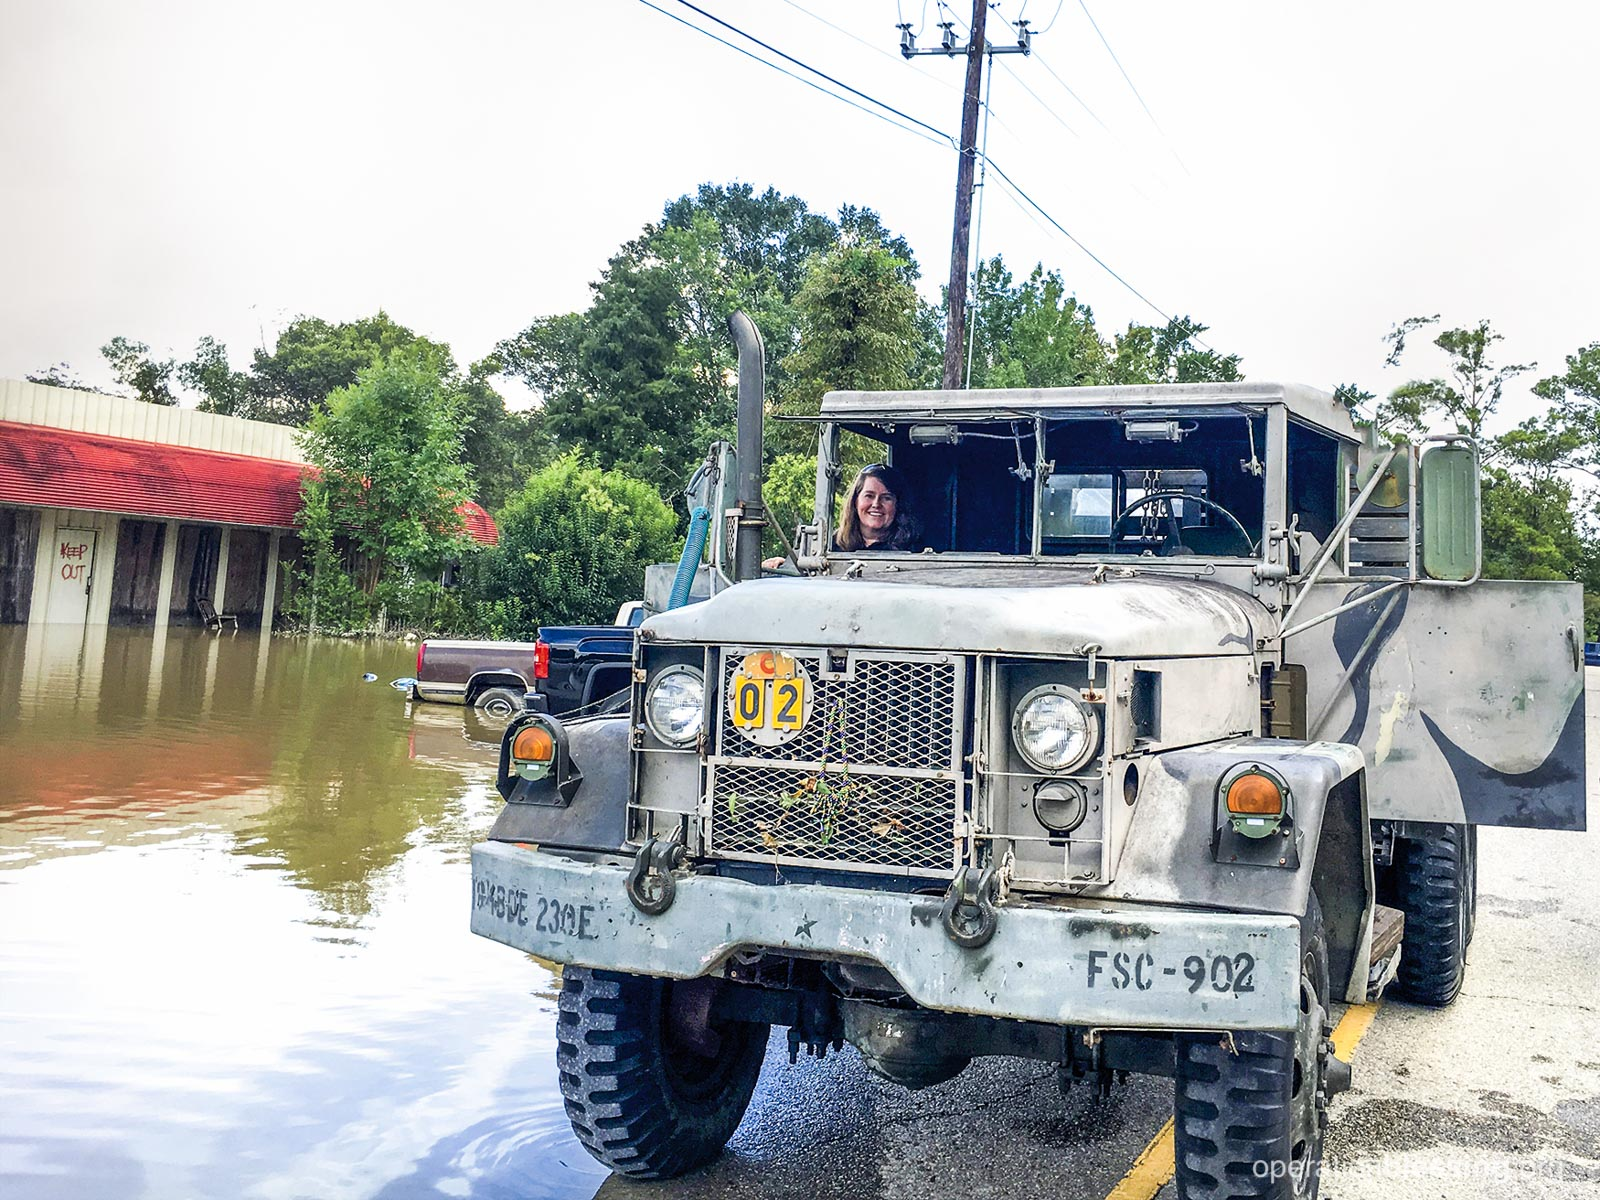 Using an army truck to reach flood victims.